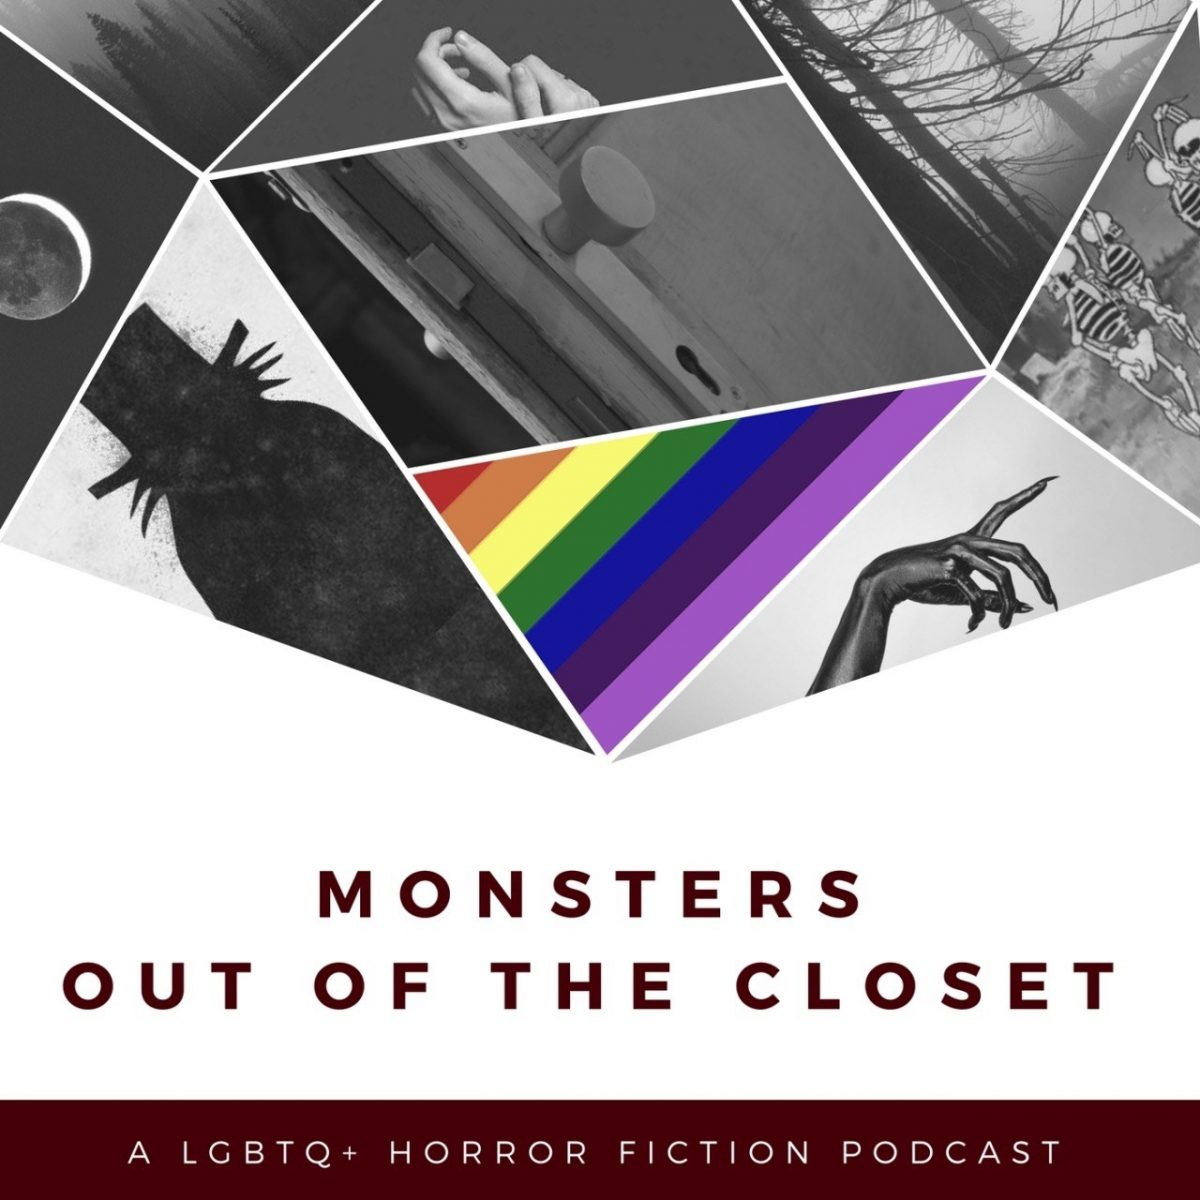 monsters out of the closet lgbtq podcast